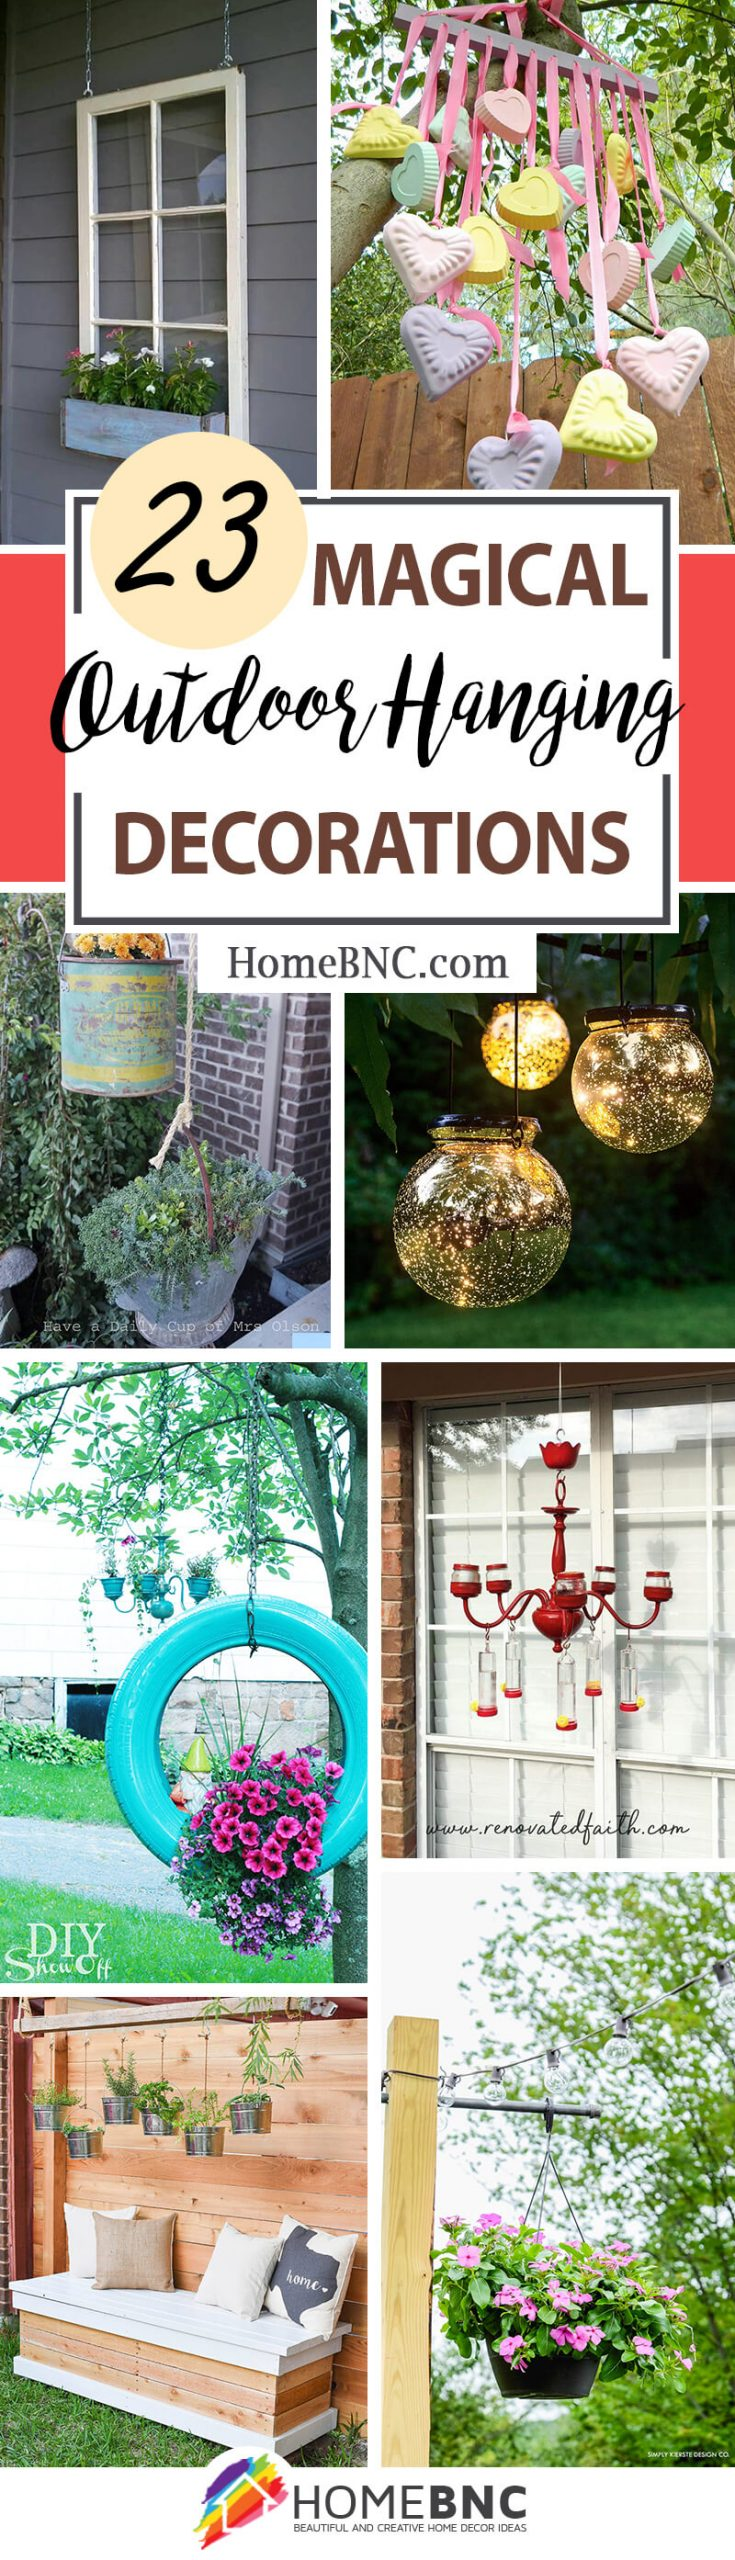 Outdoor Hanging Decoration Ideas